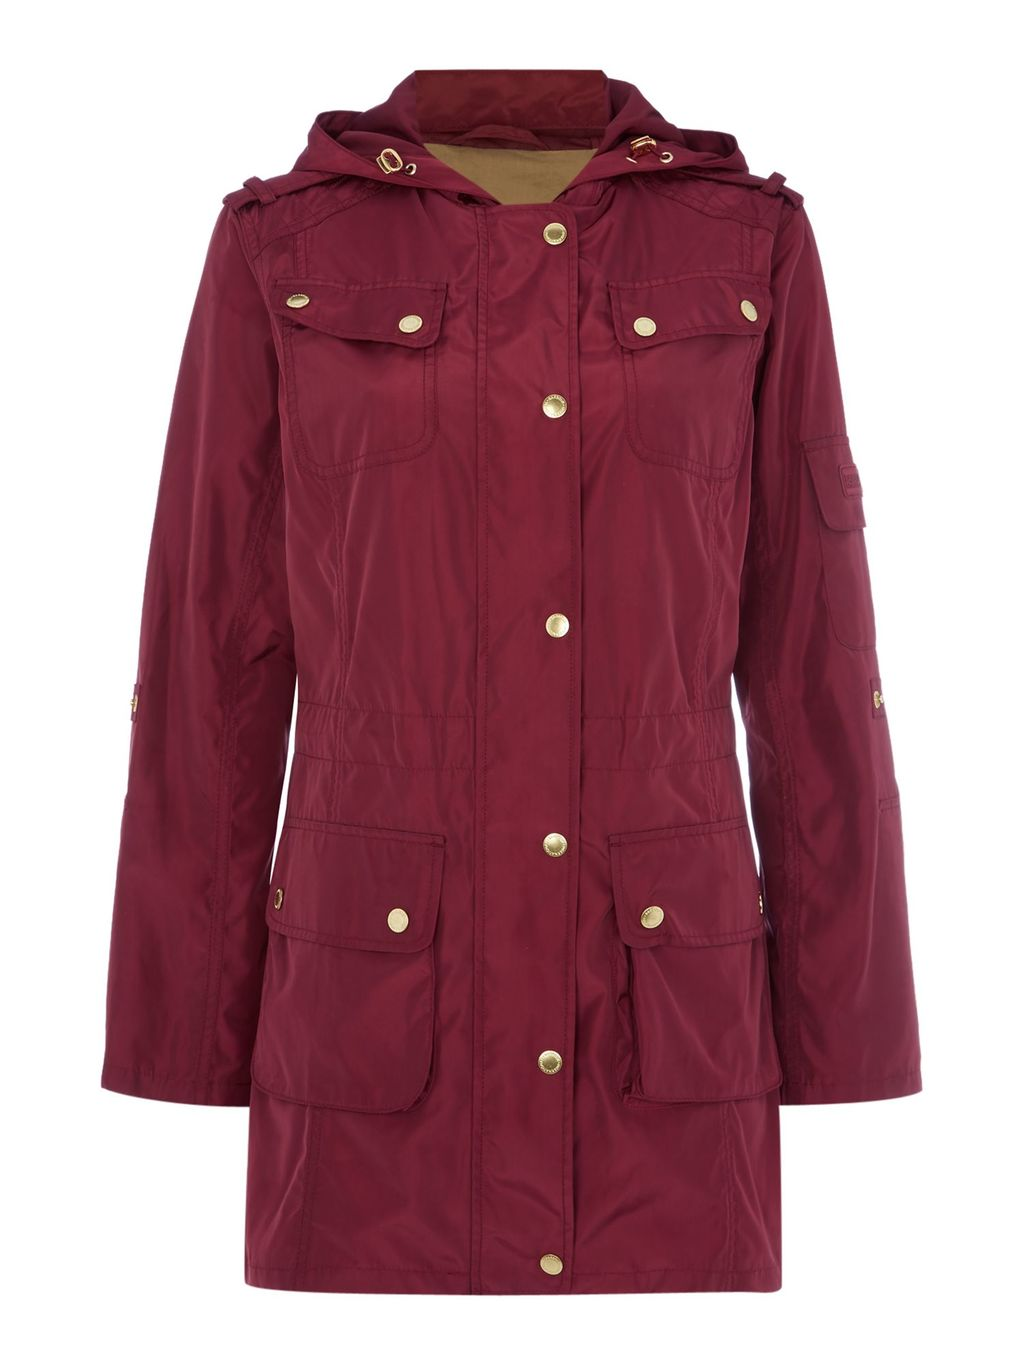 International Delter Casual Parka Jacket, Red - pattern: plain; length: below the bottom; collar: funnel; style: parka; back detail: hood; predominant colour: burgundy; occasions: casual; fit: straight cut (boxy); fibres: cotton - 100%; sleeve length: long sleeve; sleeve style: standard; texture group: cotton feel fabrics; collar break: high; pattern type: fabric; season: a/w 2015; wardrobe: highlight; embellishment location: bust, hip